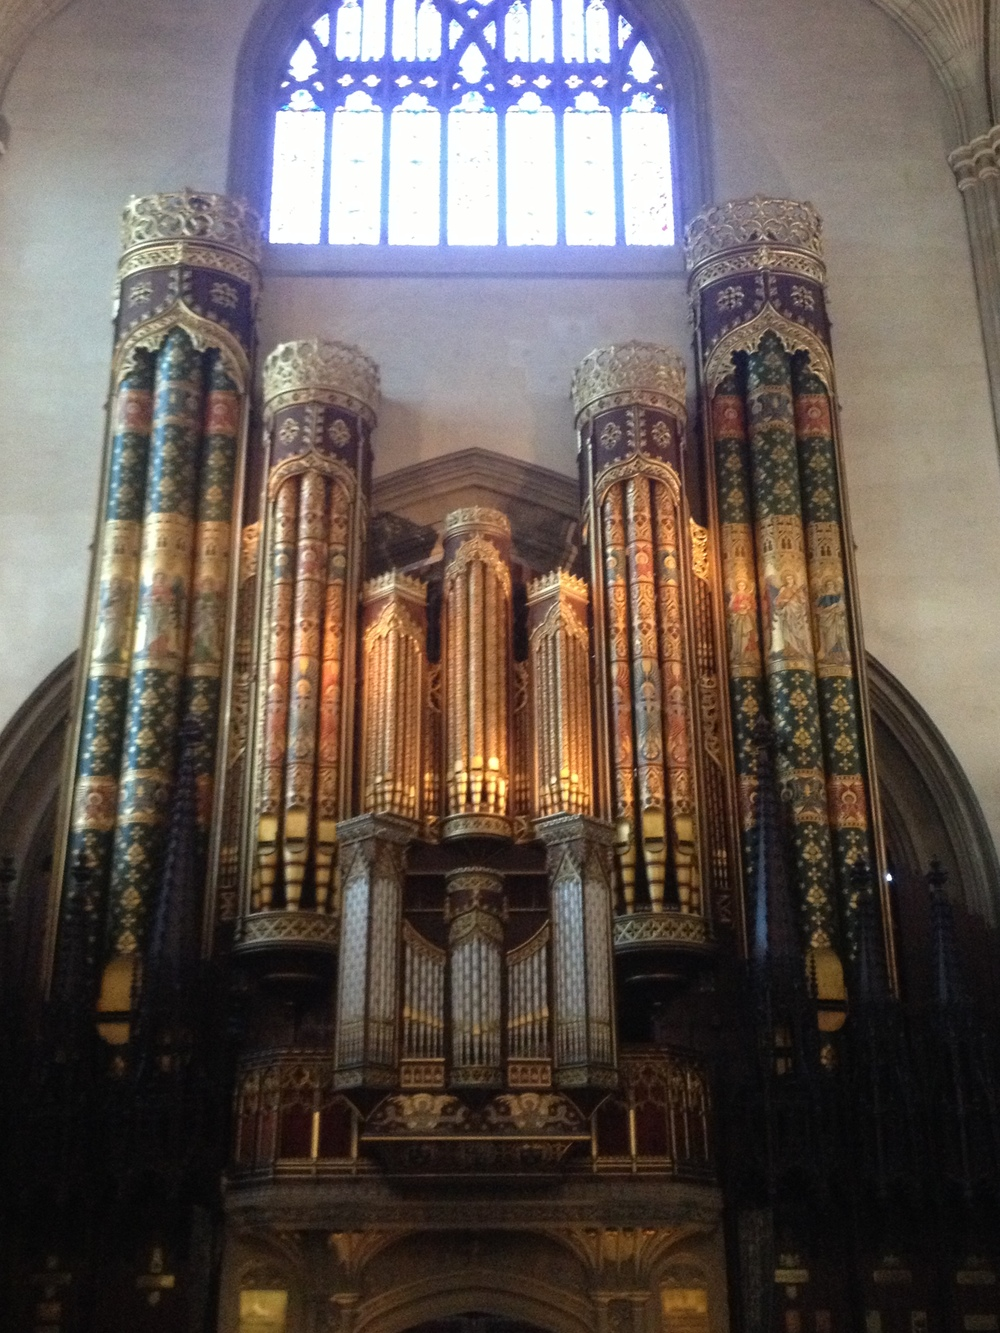 The highly decorated façade of the organ at Eton College Chapel